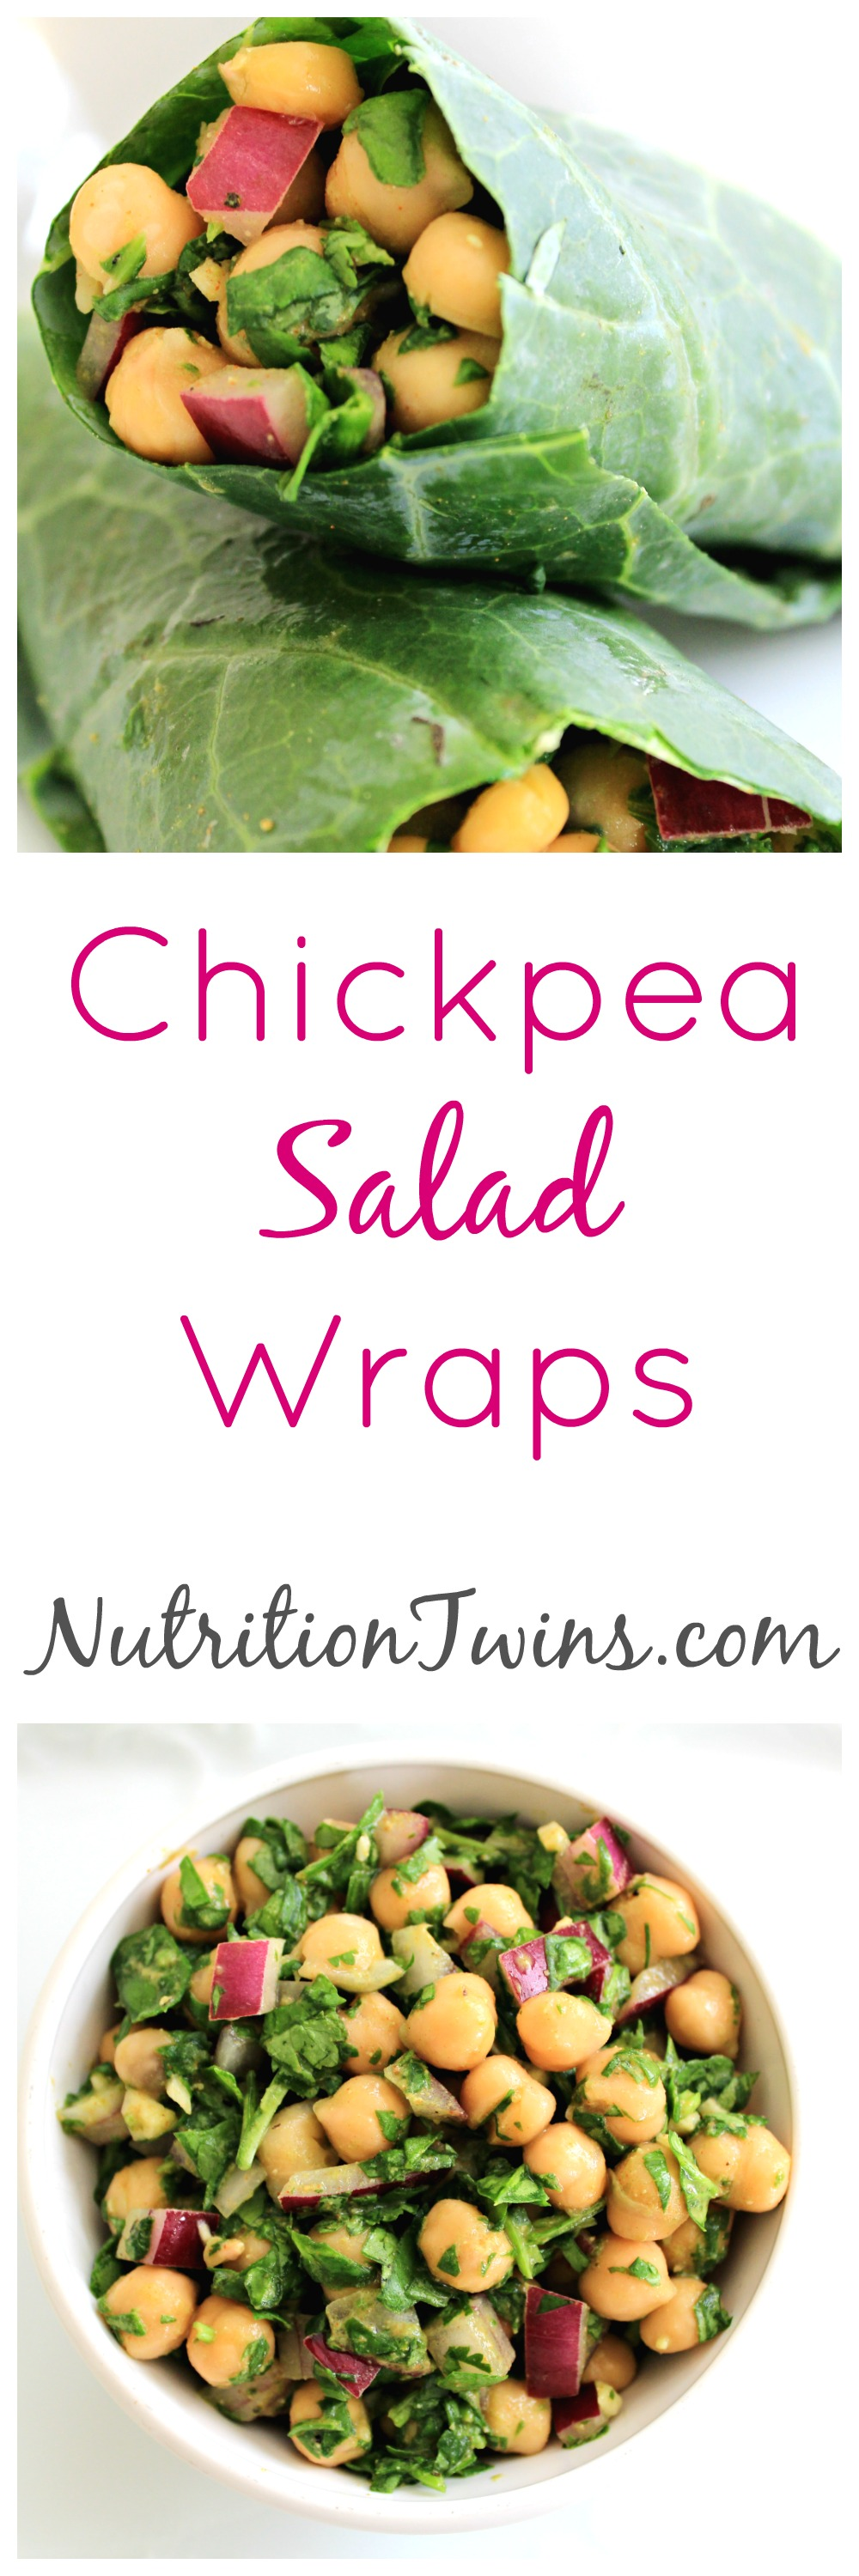 Chickpea_Salad_Wraps_Collage